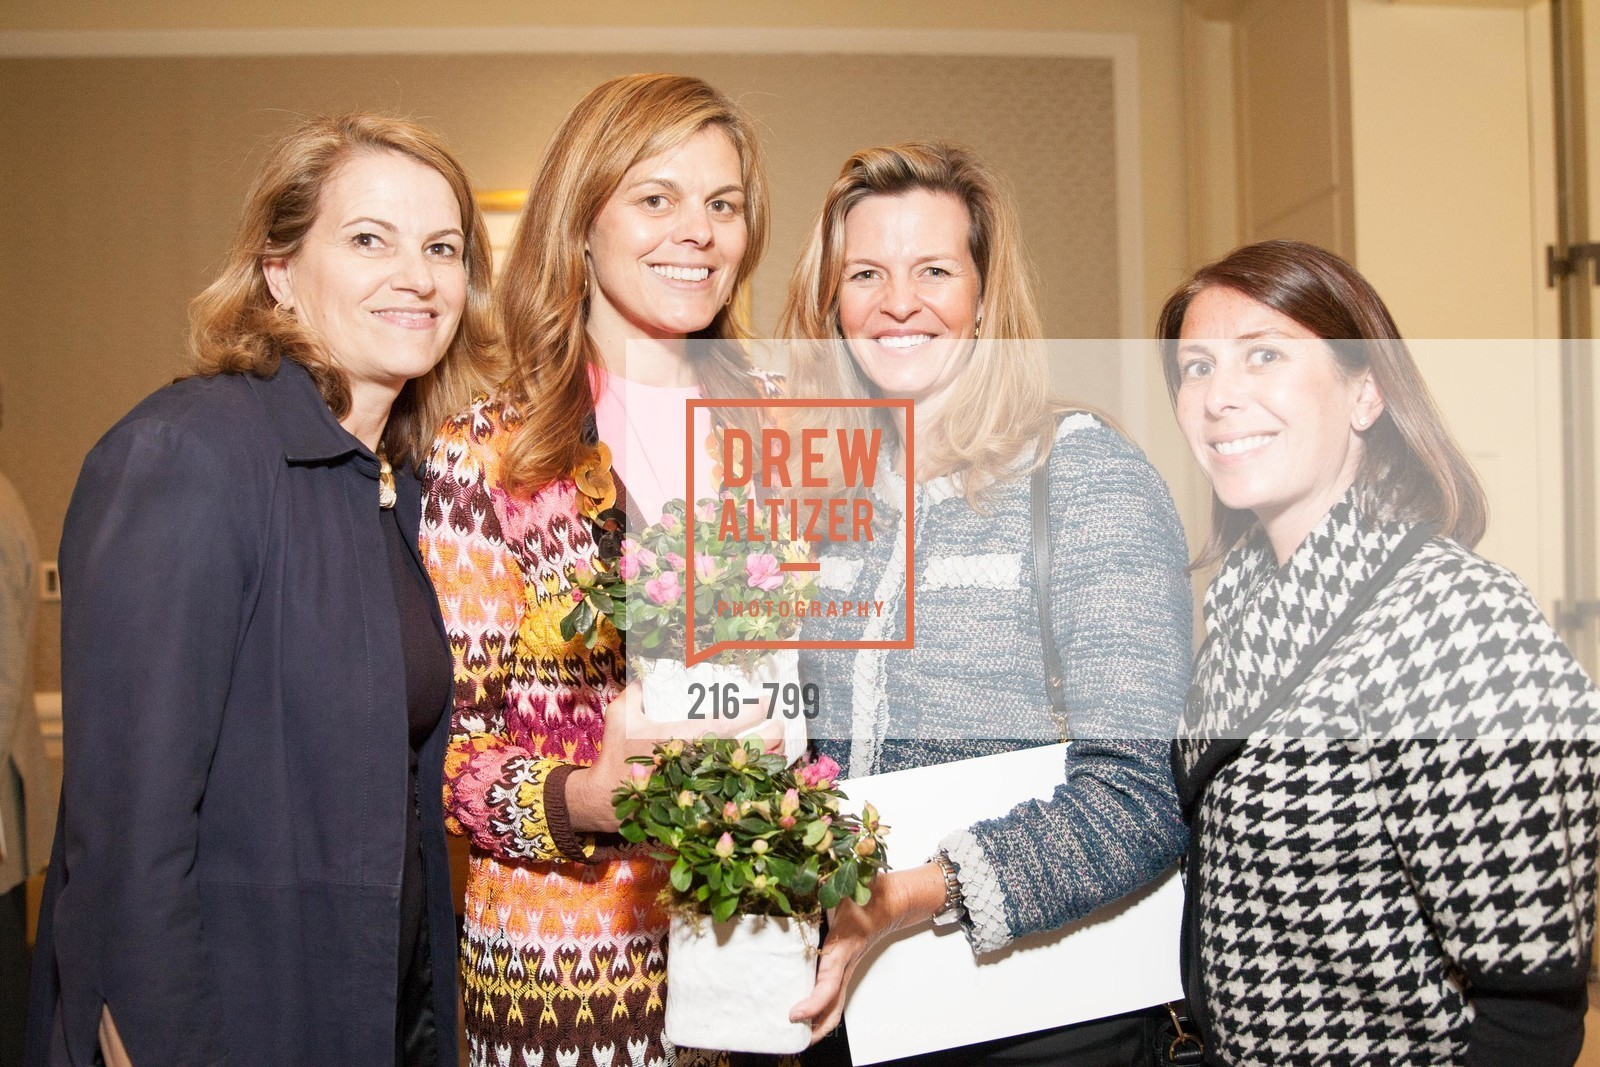 Julie Ashley, Annie Robinsons Woods, Lisa Hockin, Stacy Perry, COMPASSION & CHOICES - Empowerment Luncheon, US, April 24th, 2015,Drew Altizer, Drew Altizer Photography, full-service agency, private events, San Francisco photographer, photographer california